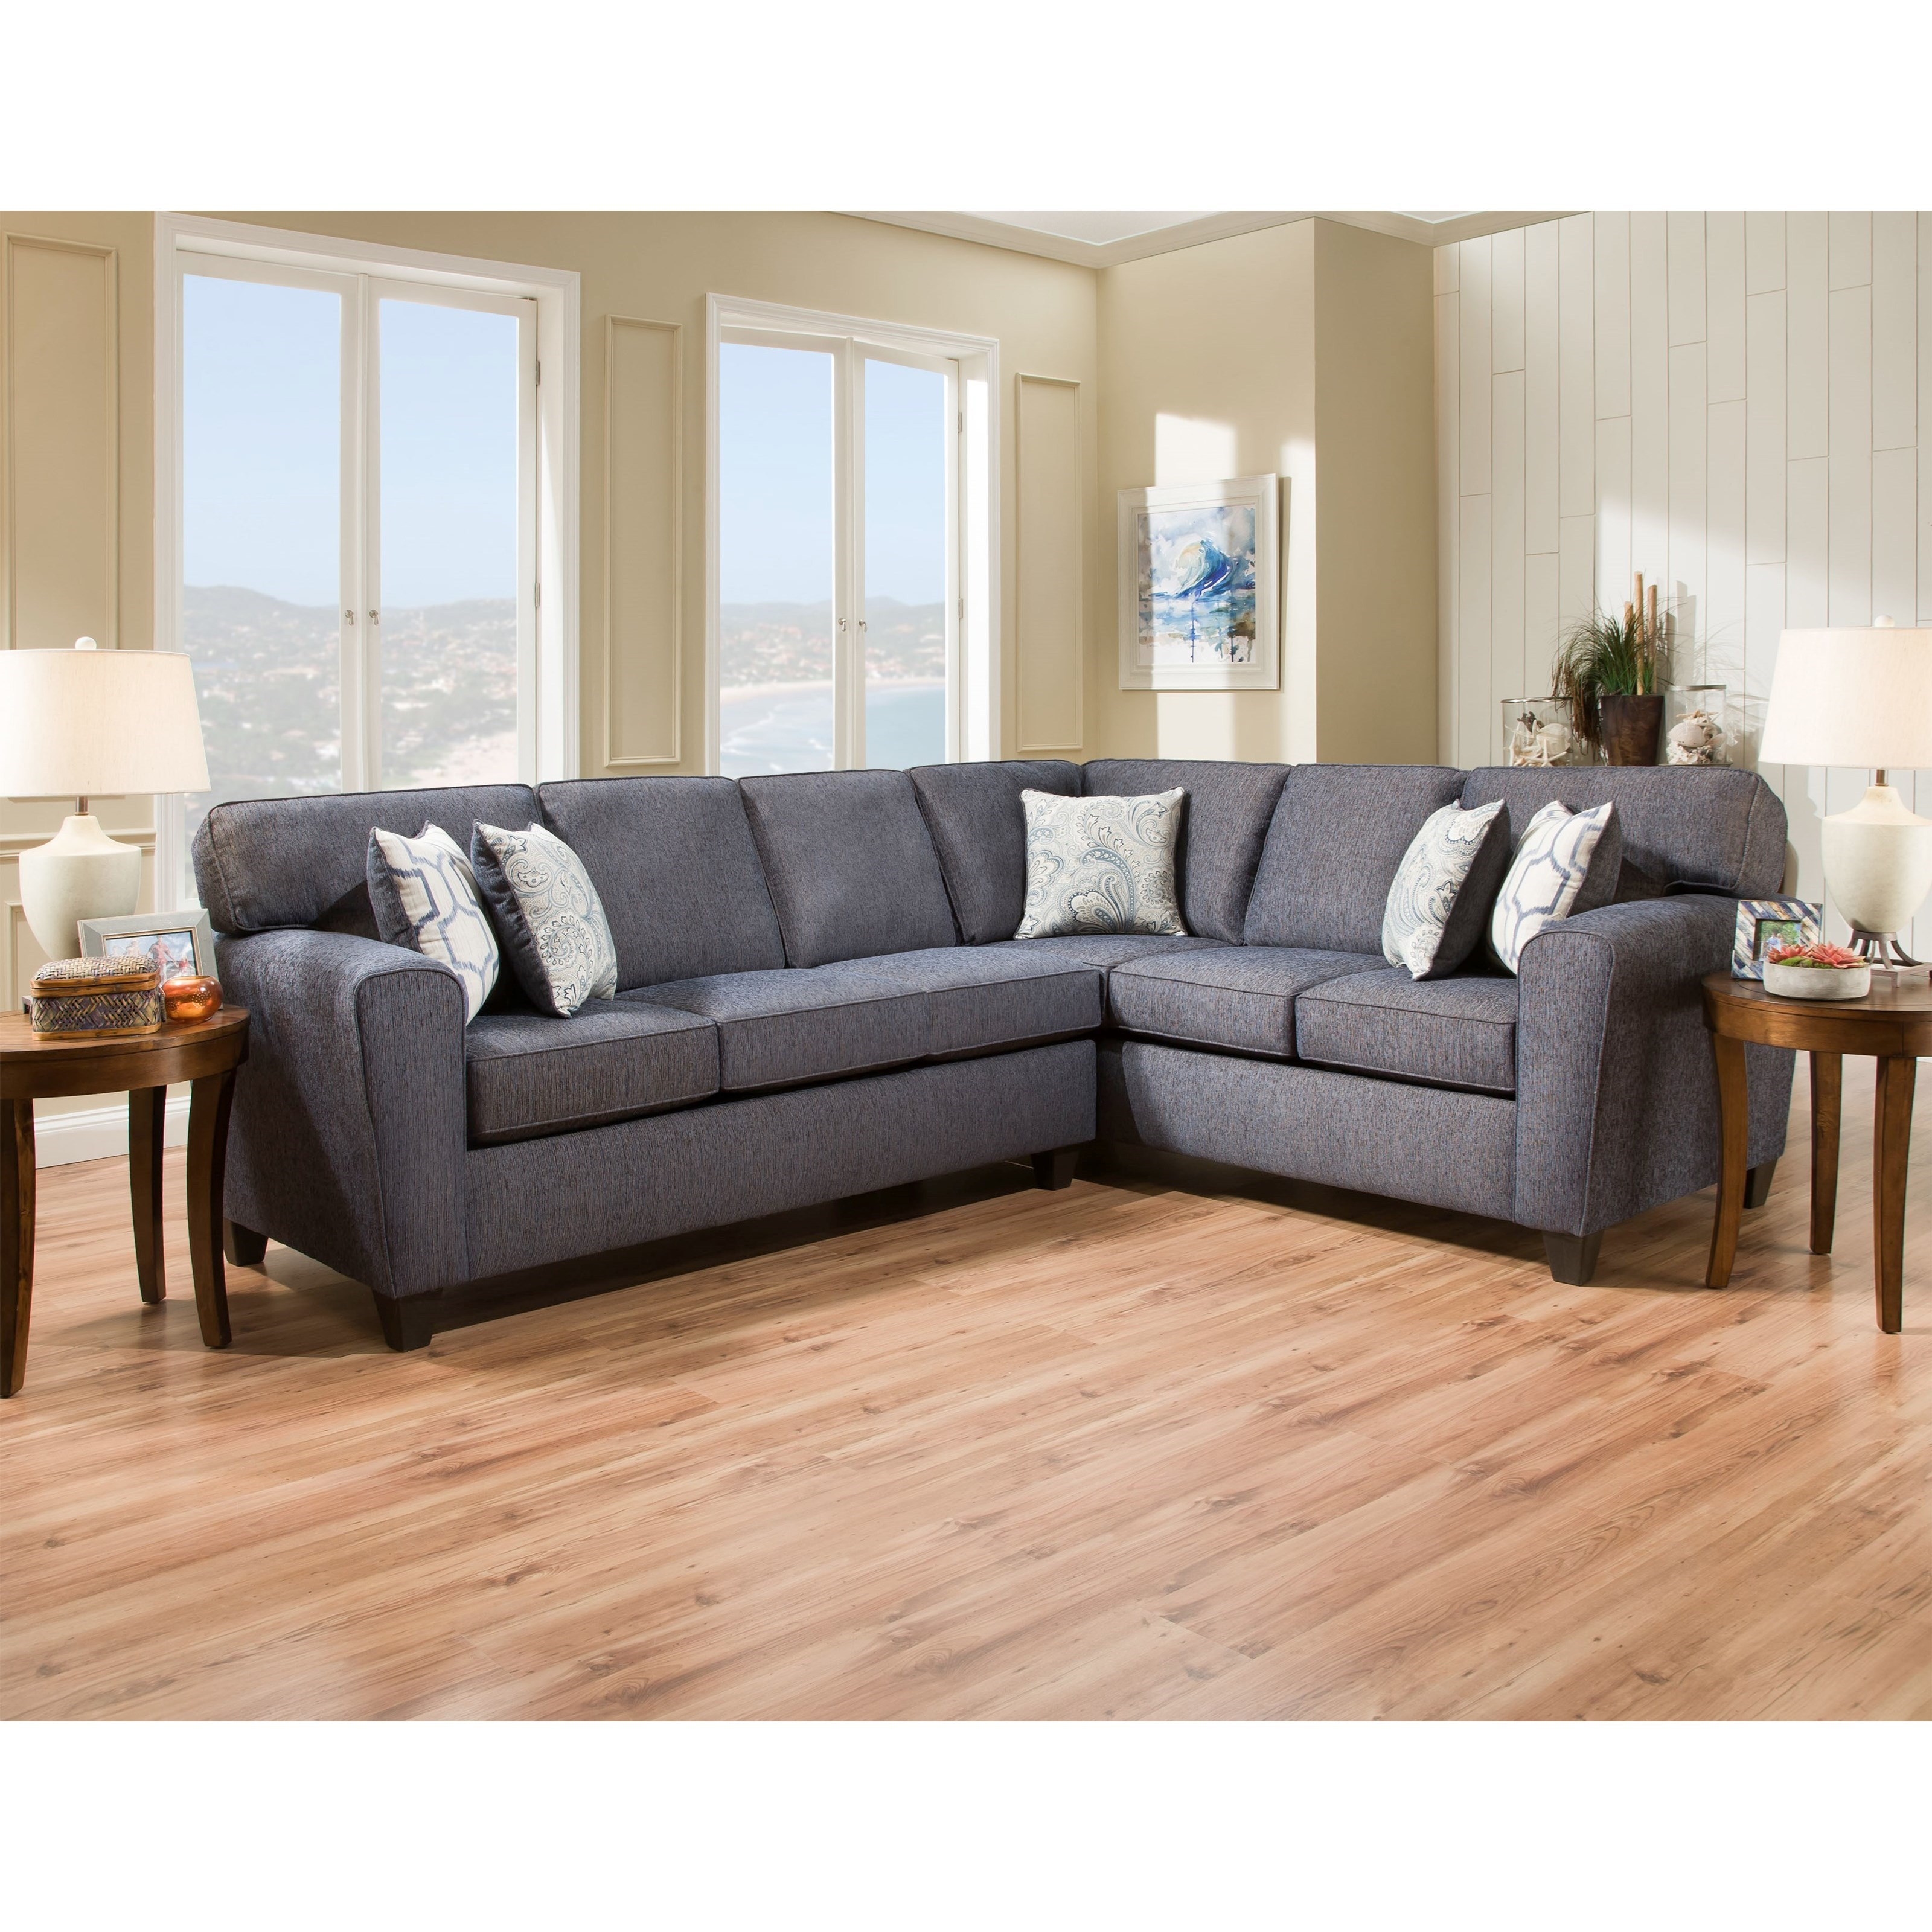 3100 Sectional Sofa by Peak Living at Prime Brothers Furniture